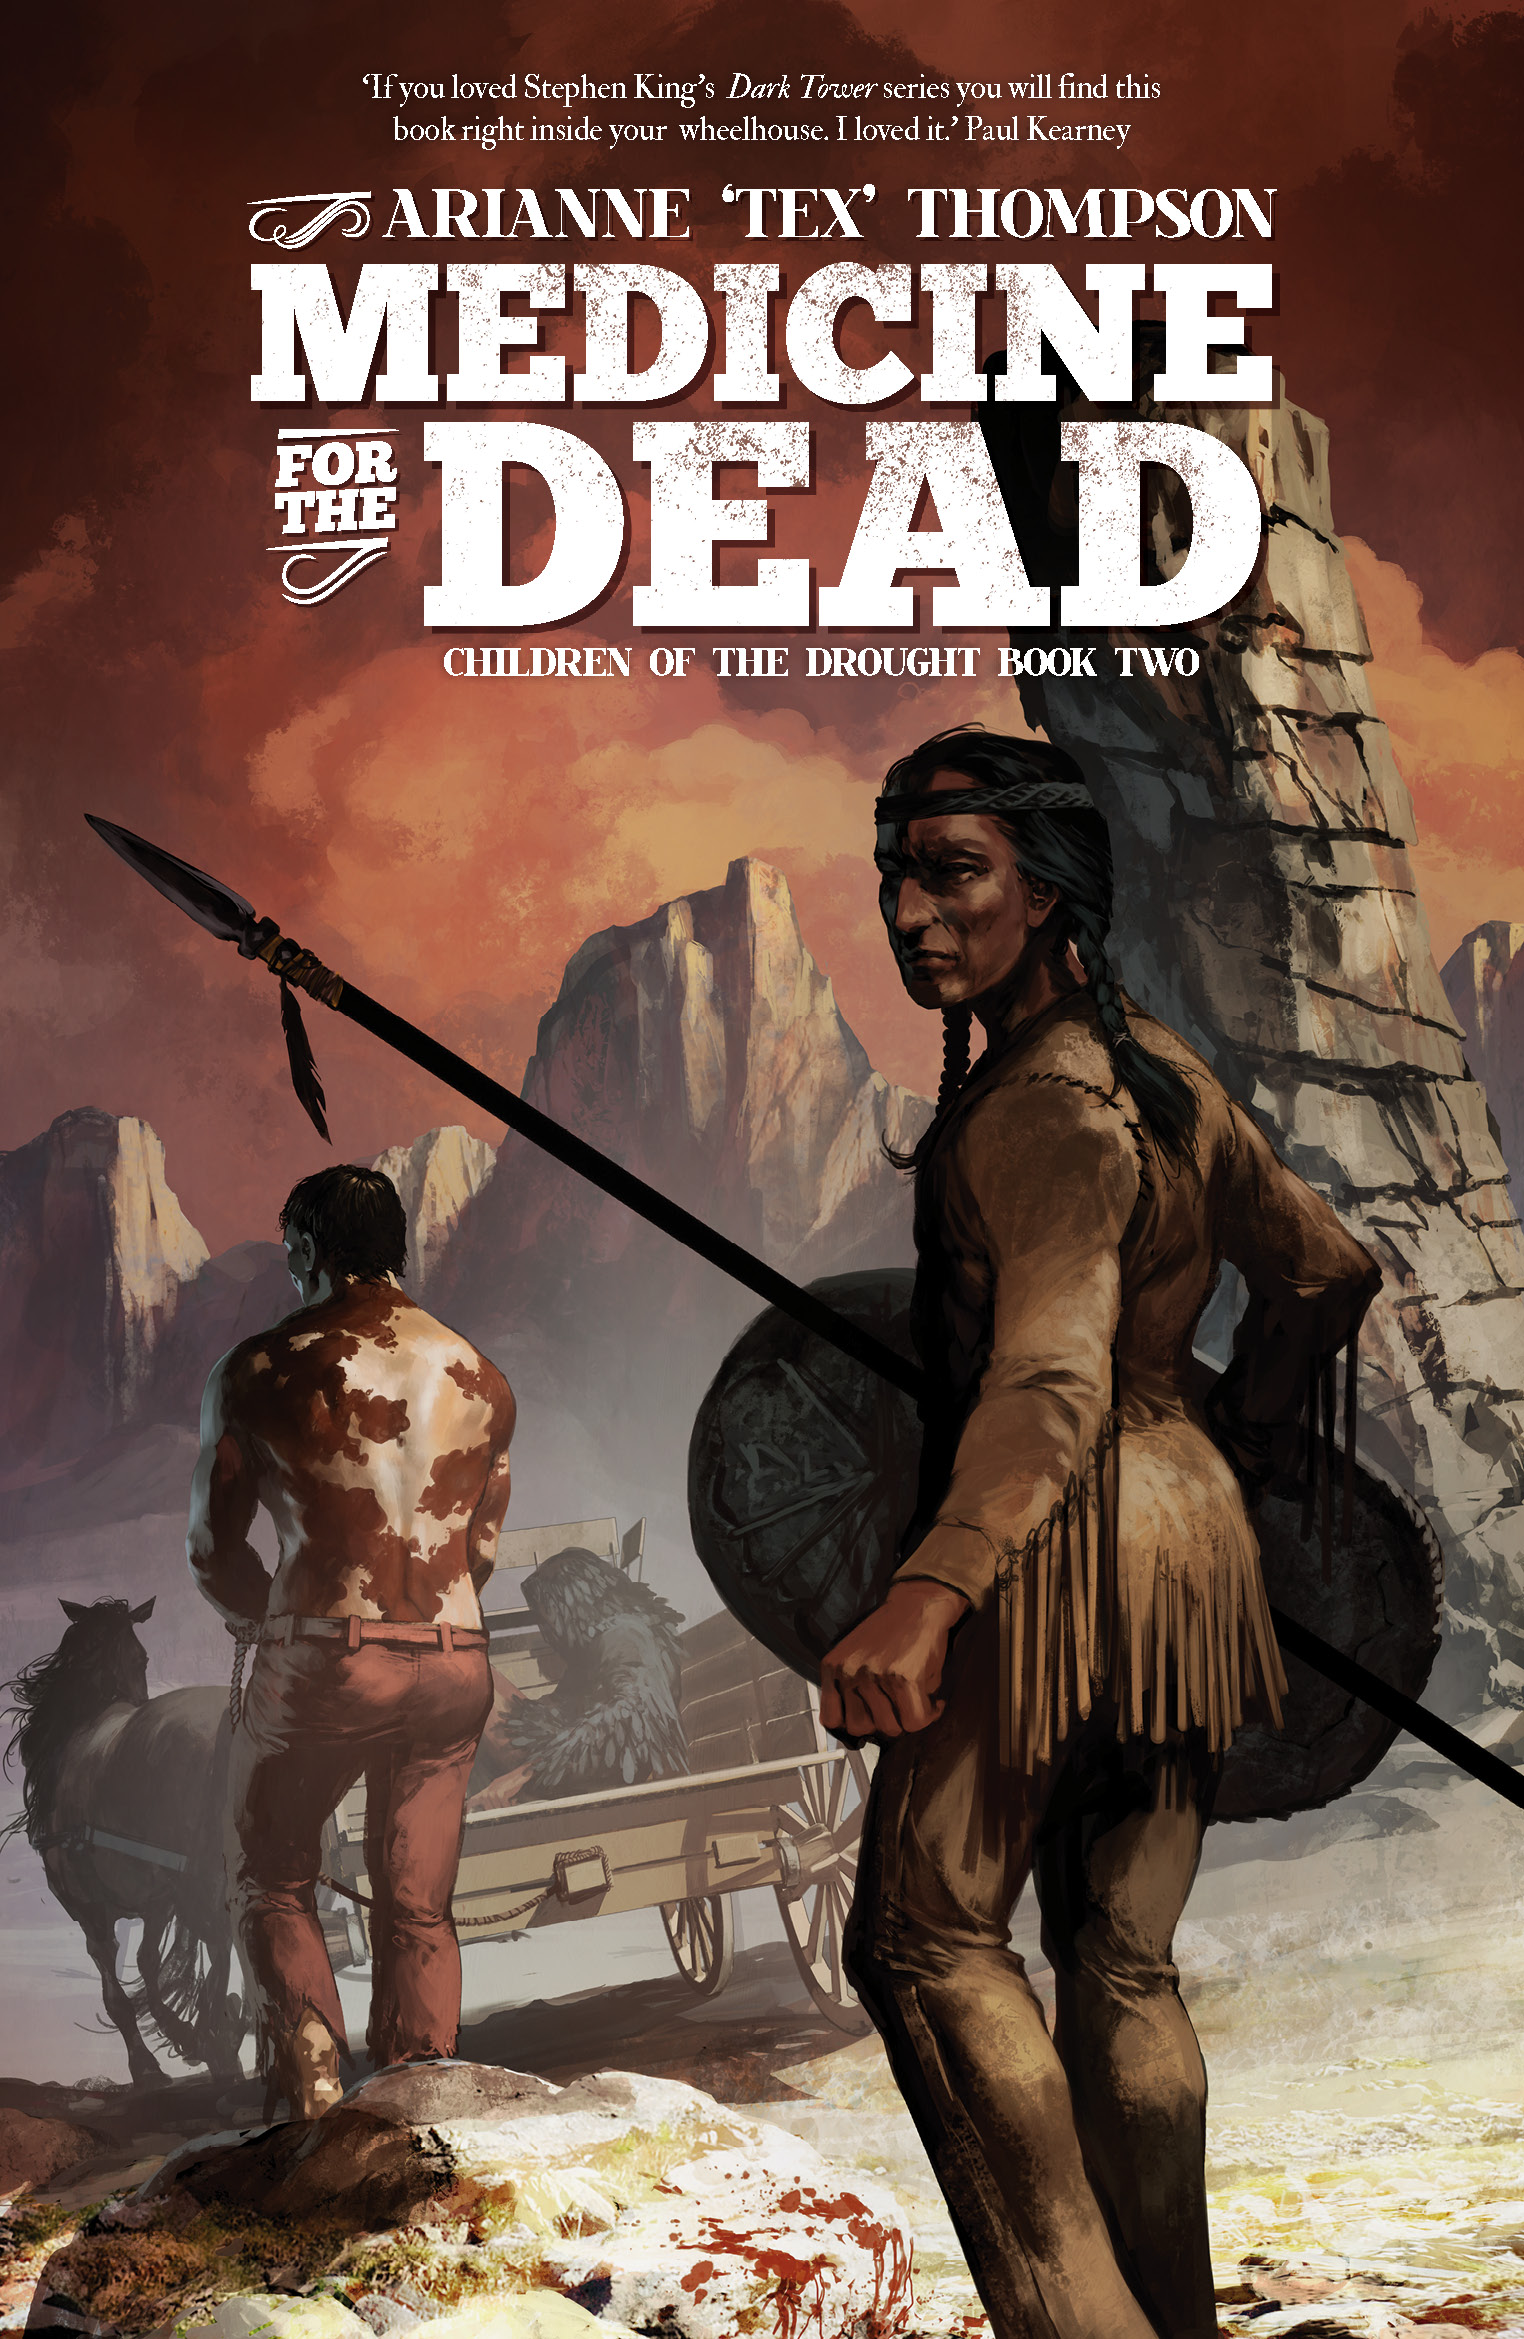 Image result for book cover medicine for the dead thompson